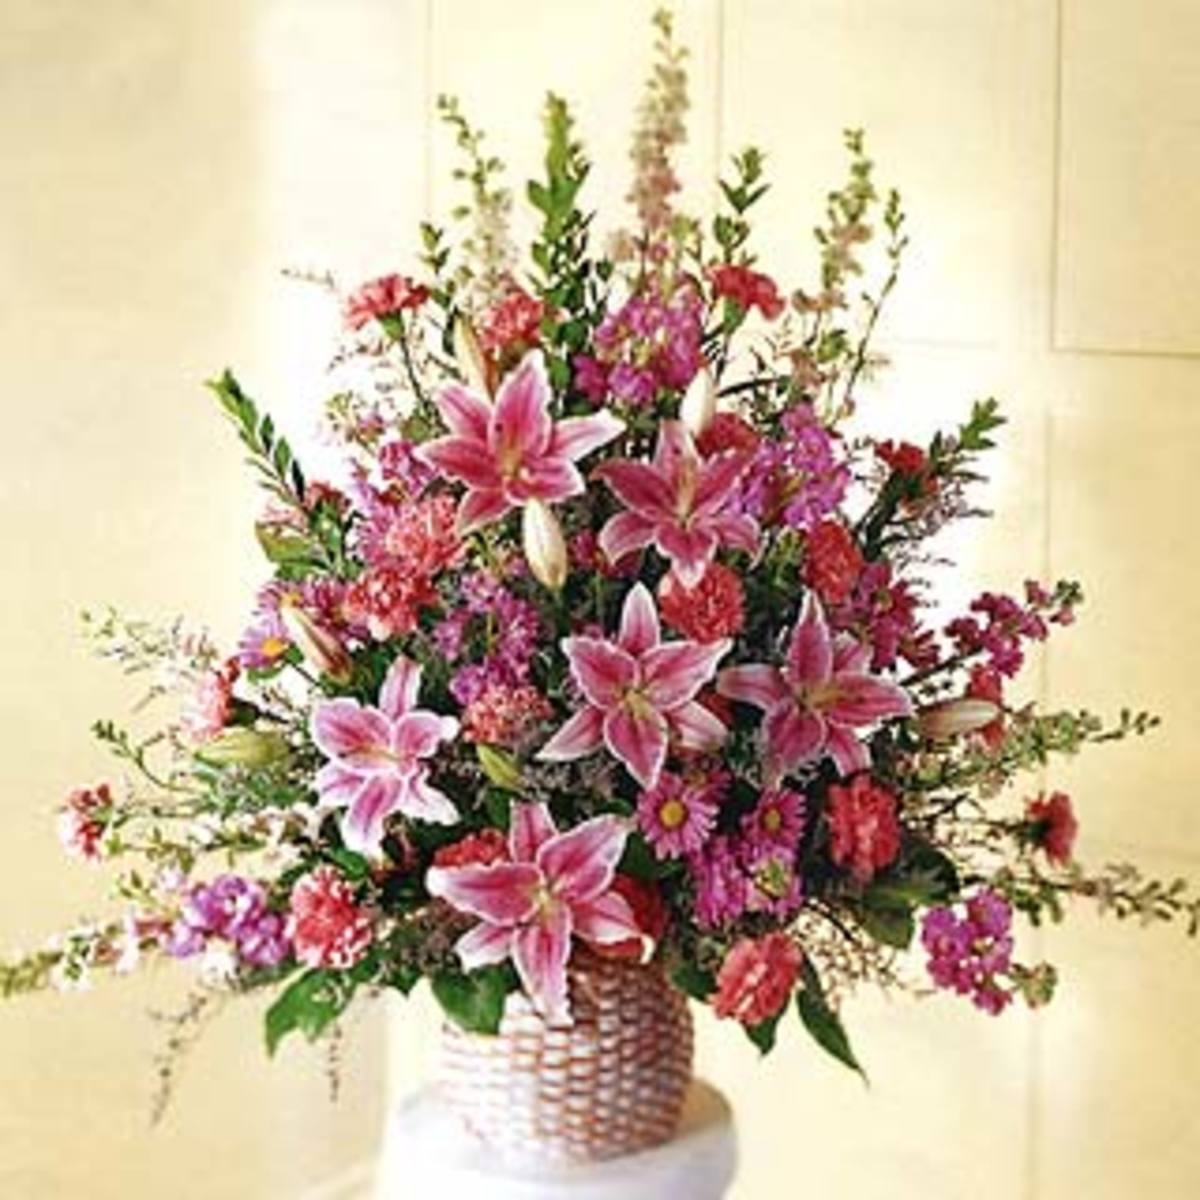 Flower Arrangements Basics: Flower Arranging Instructions